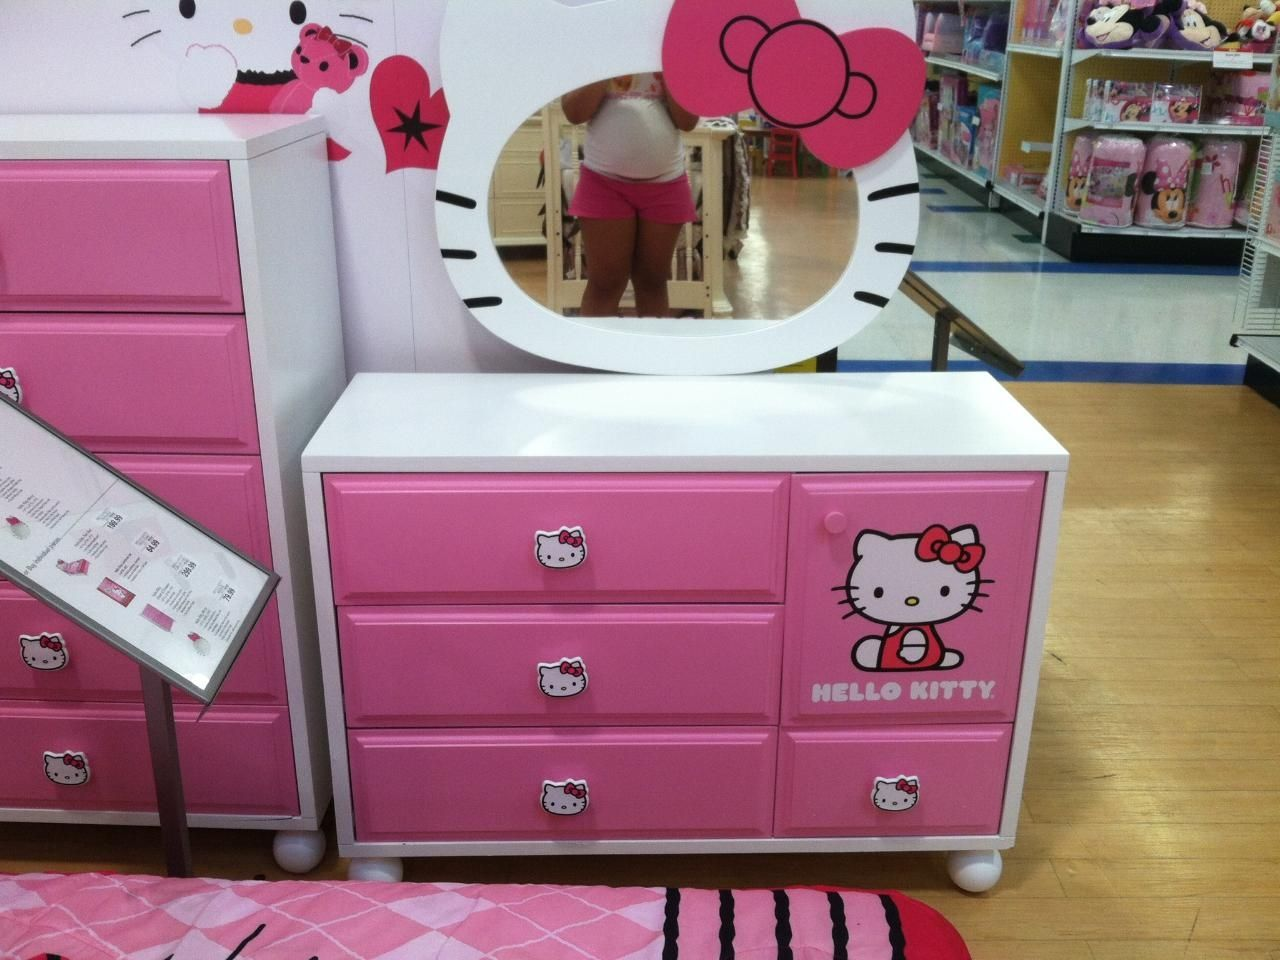 hello kitty bedroom furniture. hello kitty dresser and like omg get some yourself pawtastic adorable cat apparel bedroom furniture s